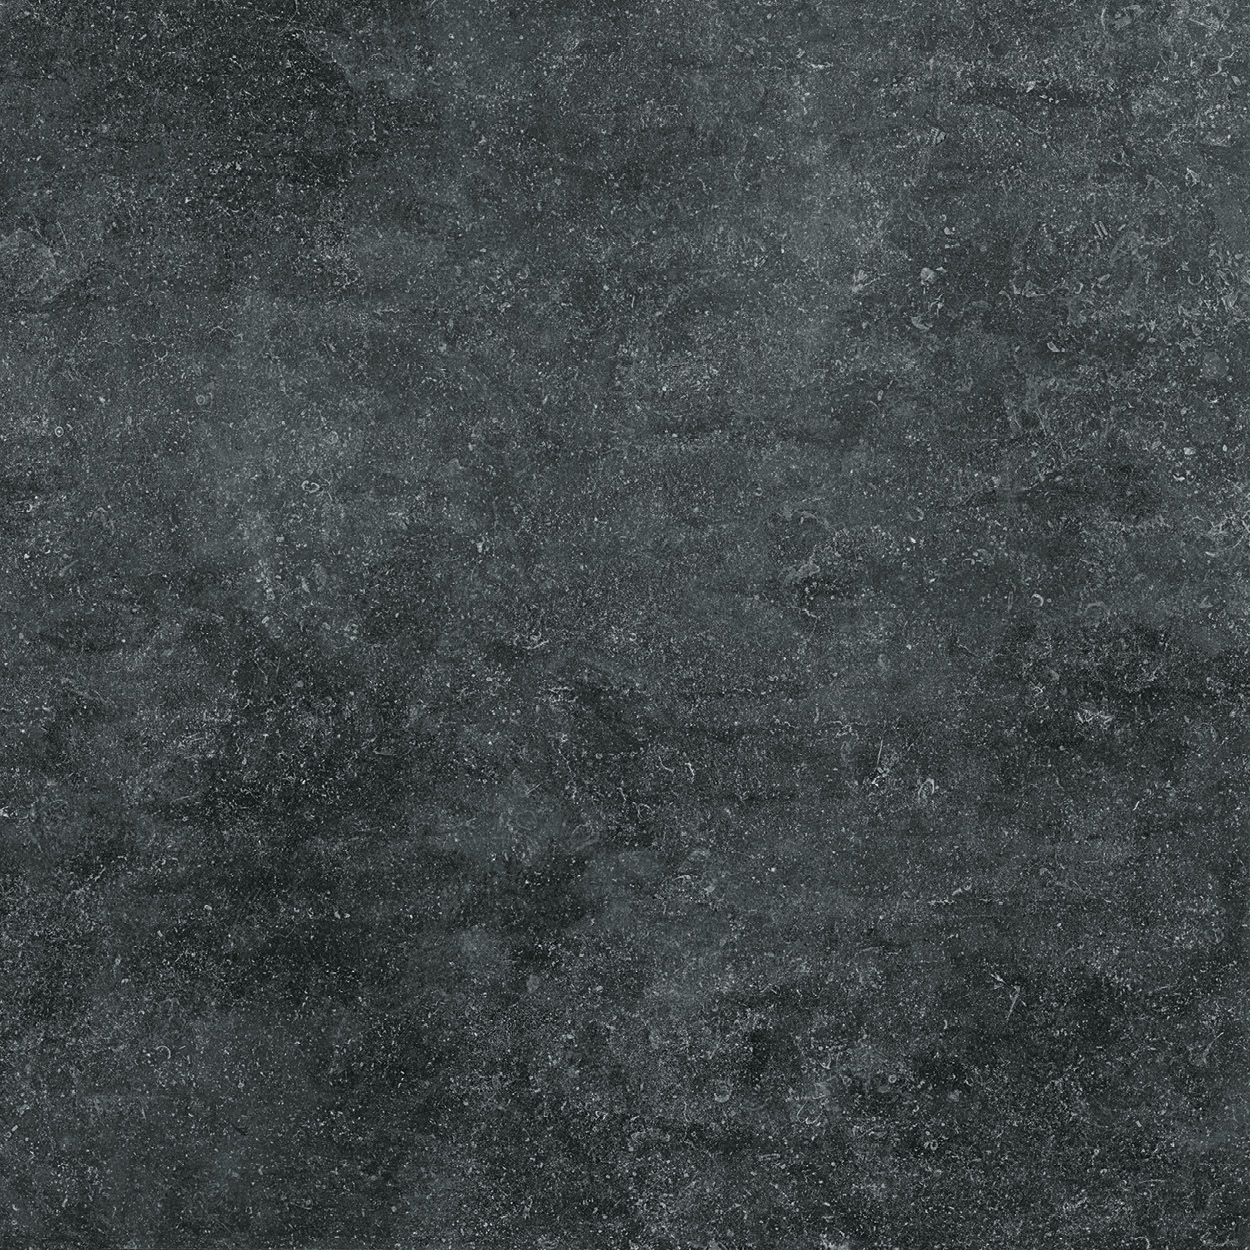 32 X 32 Marwari Storm Rectified Porcelain Tile (SPECIAL ORDER ONLY)